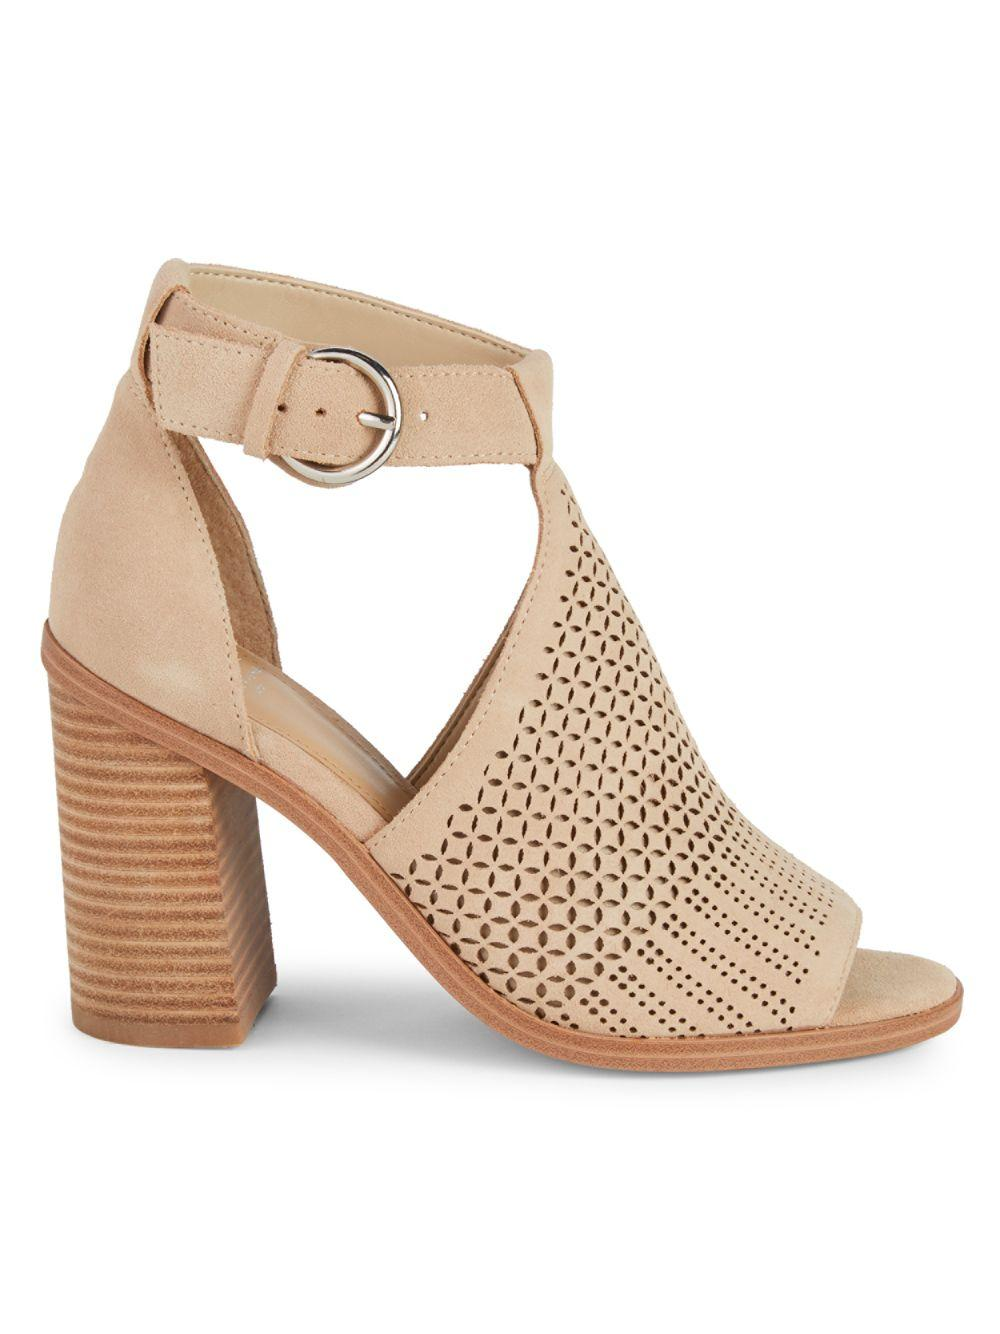 470ce8eac1e Lyst - Marc Fisher Vixen Cutout Suede Block Heel Sandals in Natural